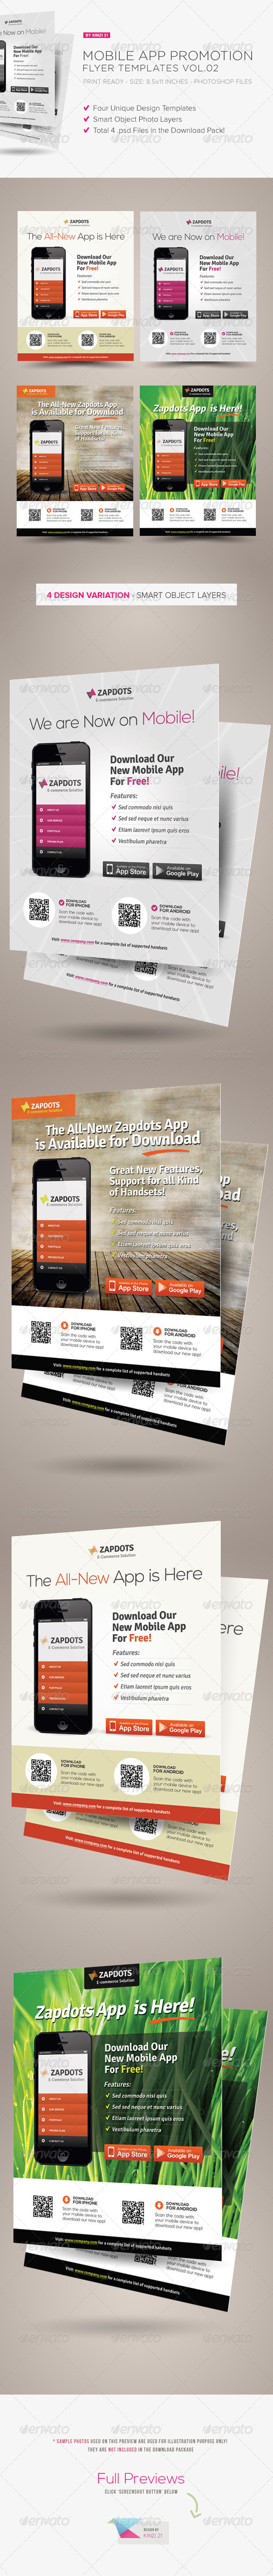 Mobile App Promotion Flyers Vol.02 - Corporate Flyers